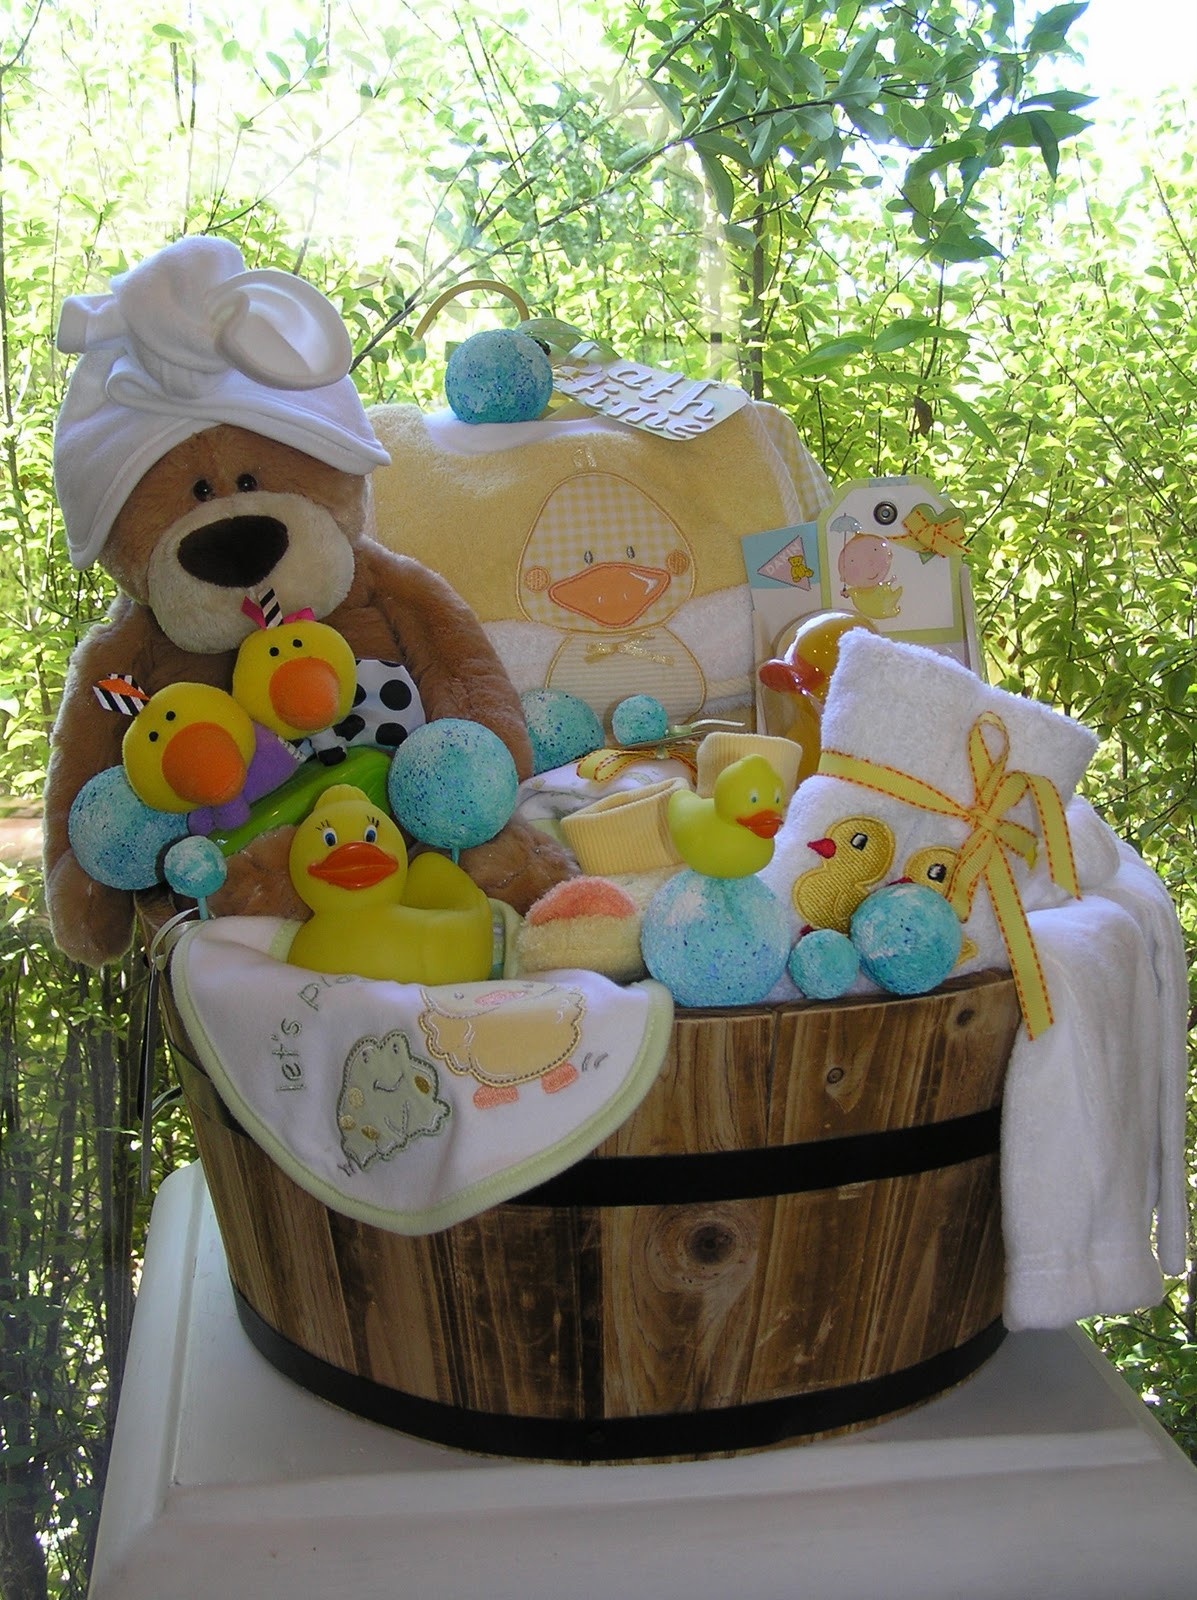 Gift Basket Ideas For Baby Shower  White Horse Relics Unique Themed Baby Gift Baskets